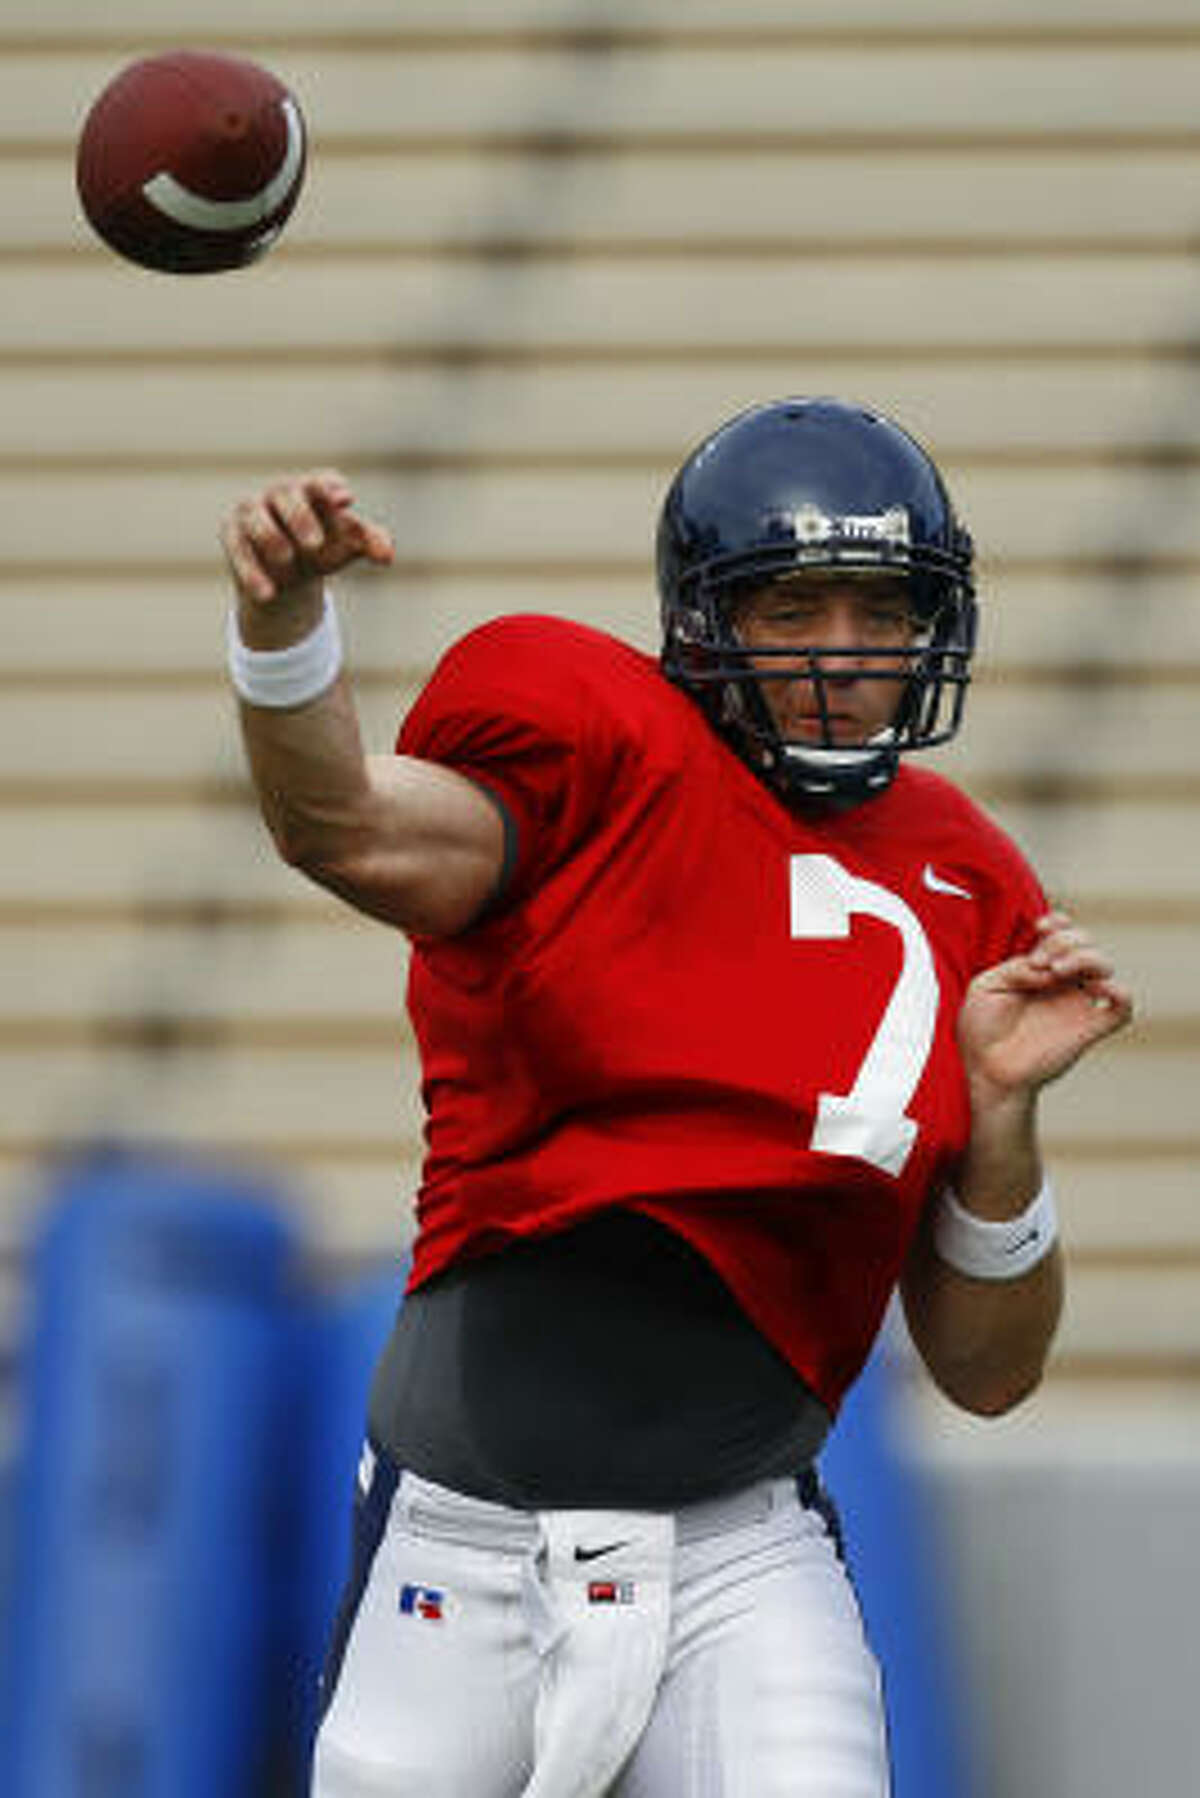 Junior quarterback Nick Fanuzzi, a transfer from Alabama, started eight games for the Owls in 2009.